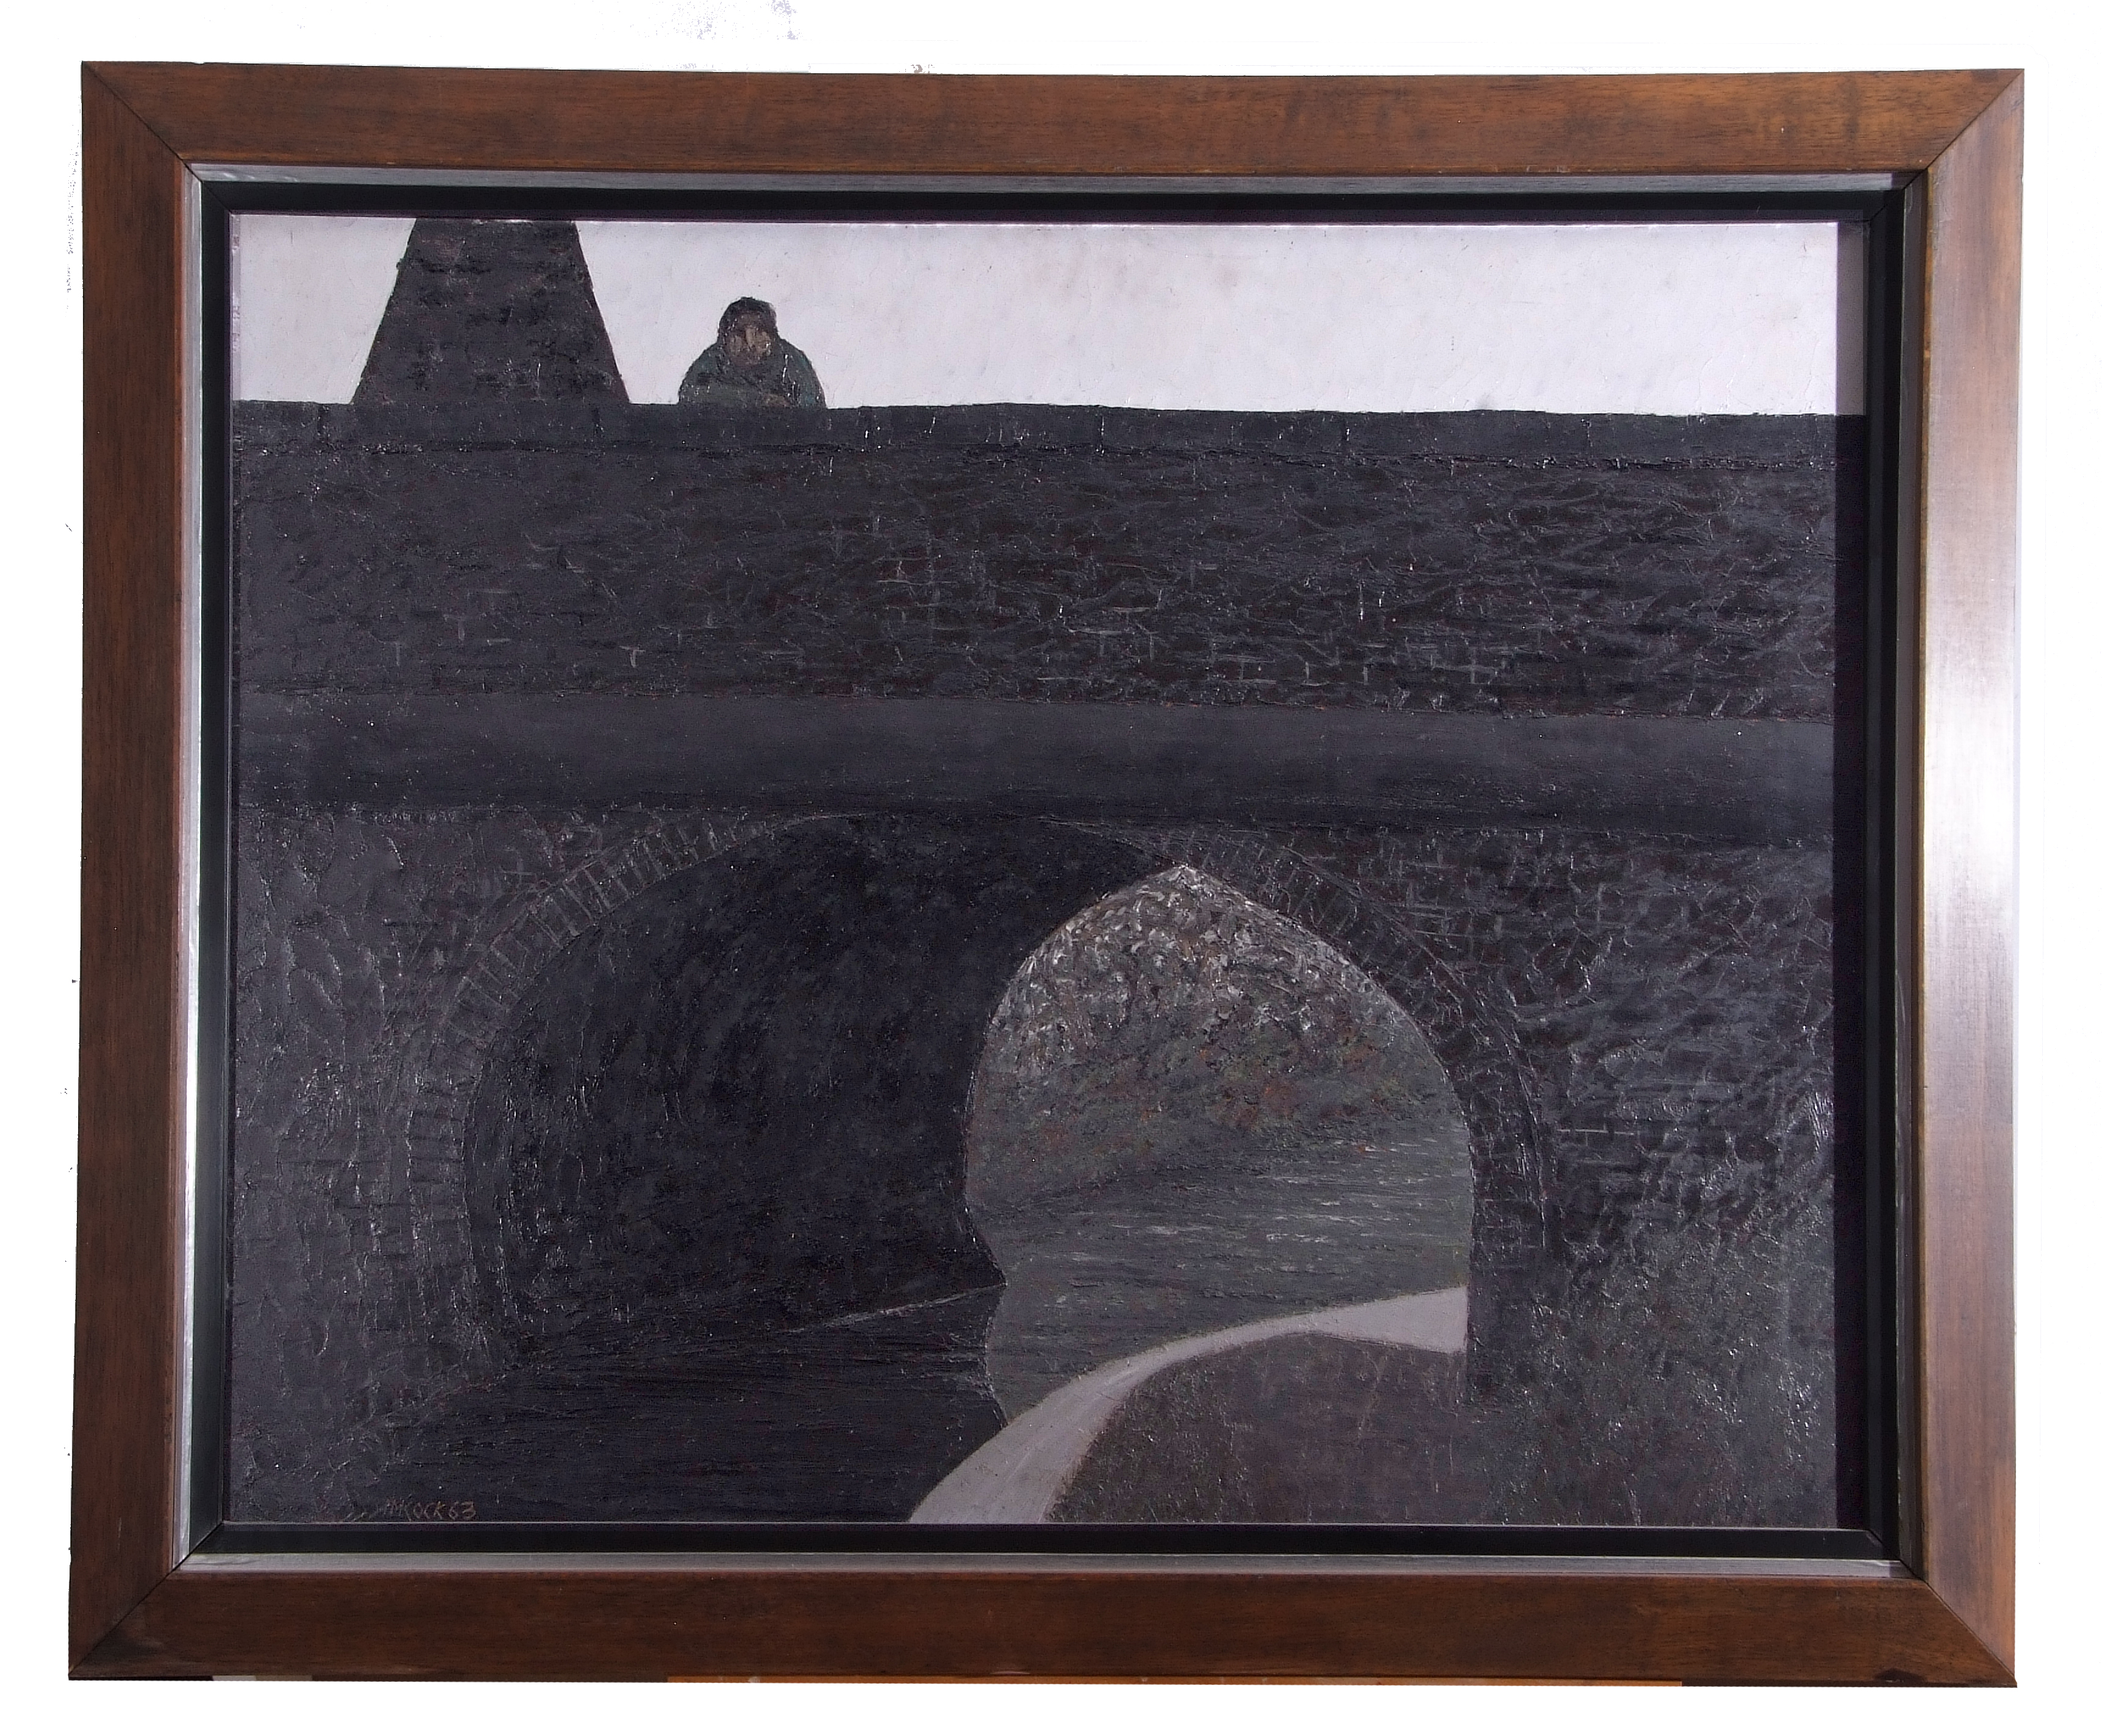 Jack Simcock, View from the Bridge , Oil on board, signed dated, 23.5 x 30ins.